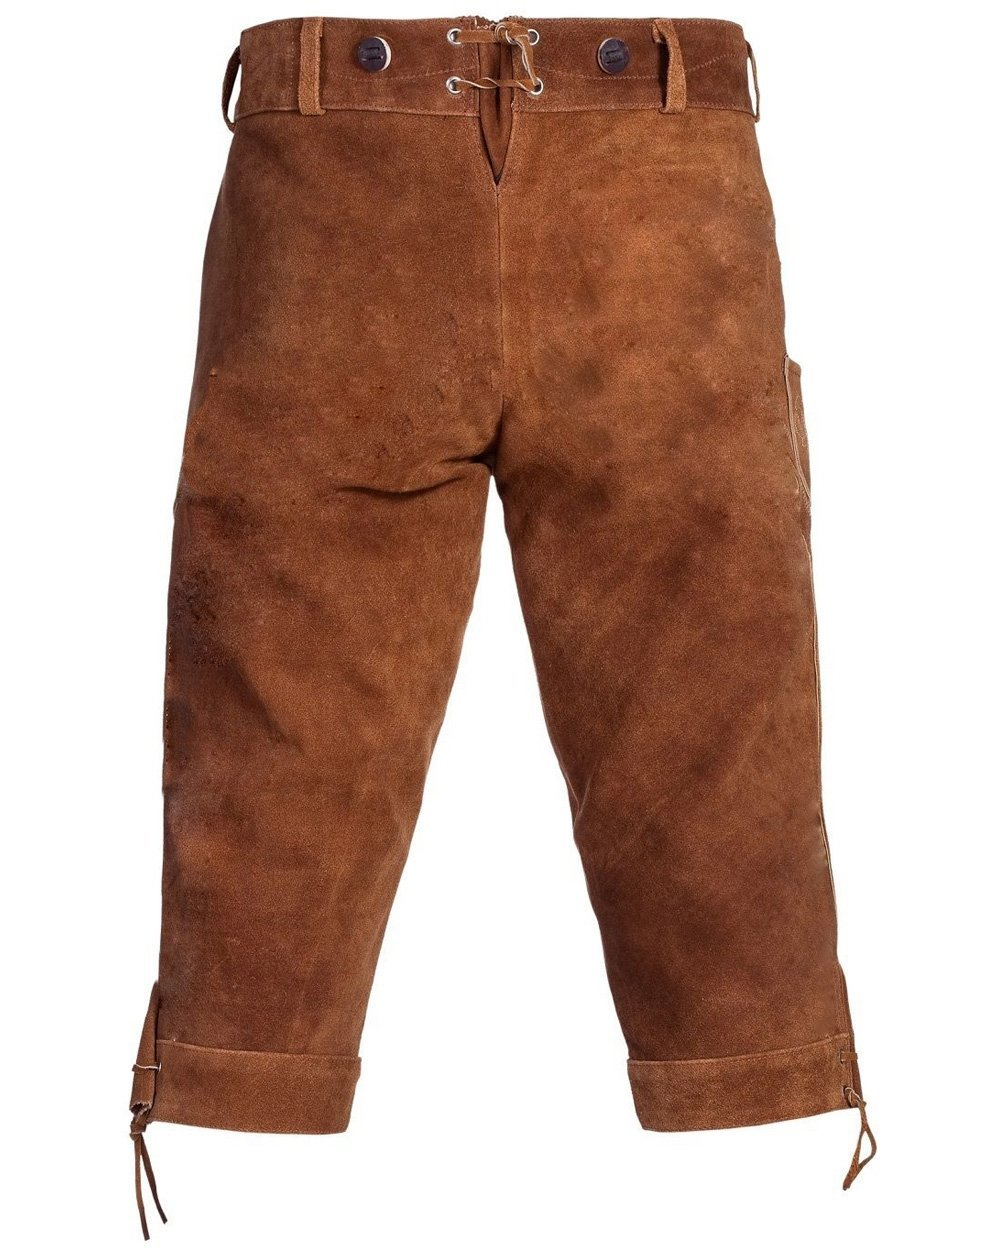 K408-Authentic-German-Bavarian-Suede-Lederhosen-Oktoberfest-Beer-Men-Costume-Hat